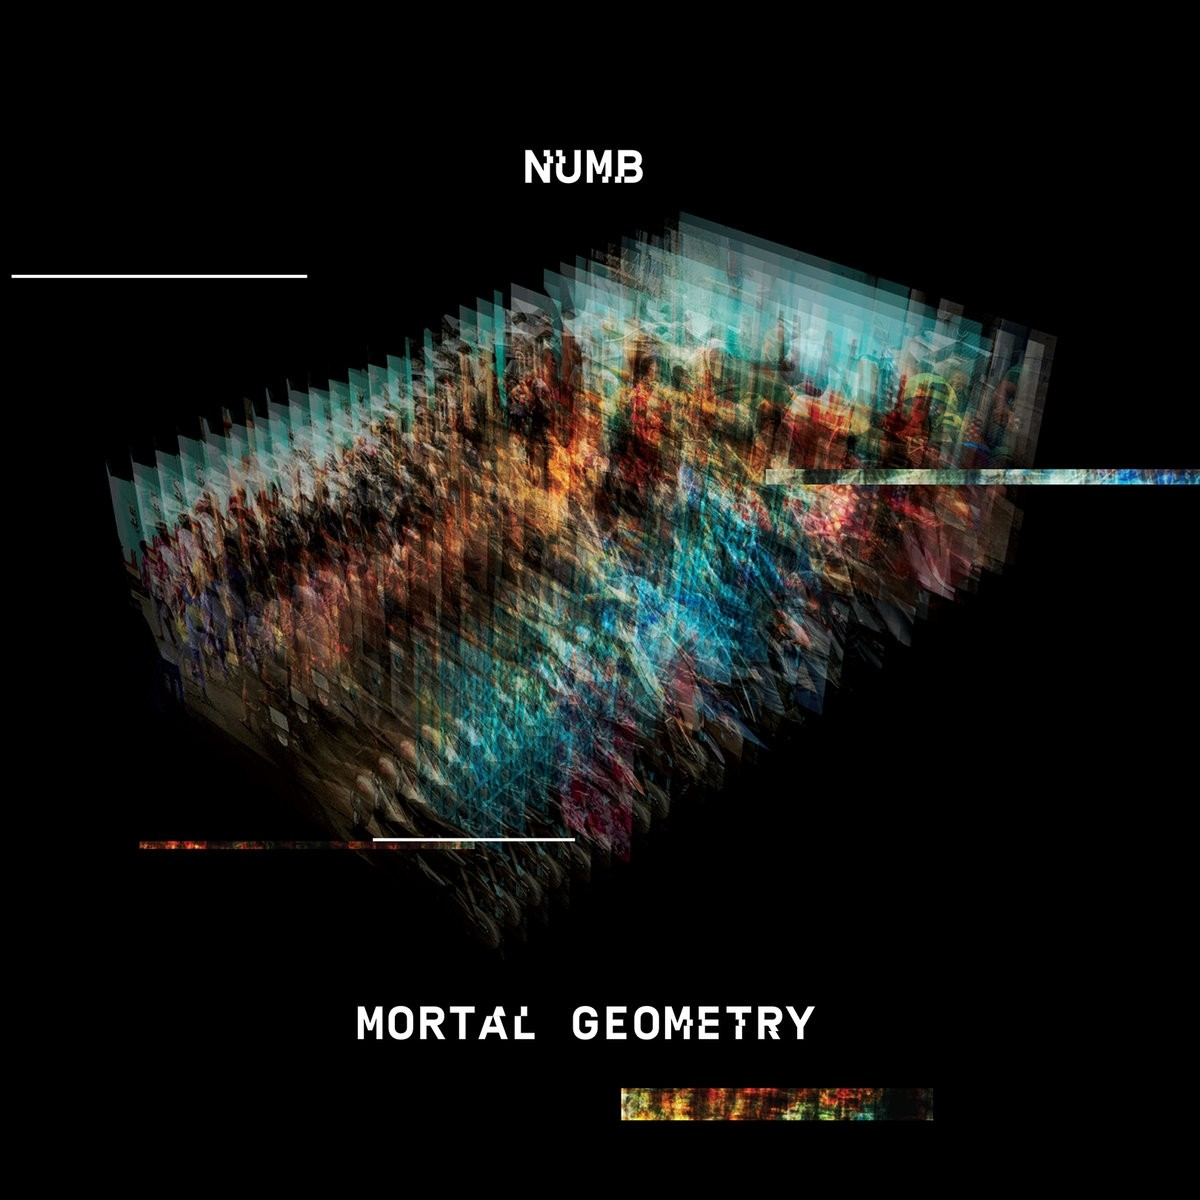 Numb - Mortal Geometry (Limited Edition) - LP